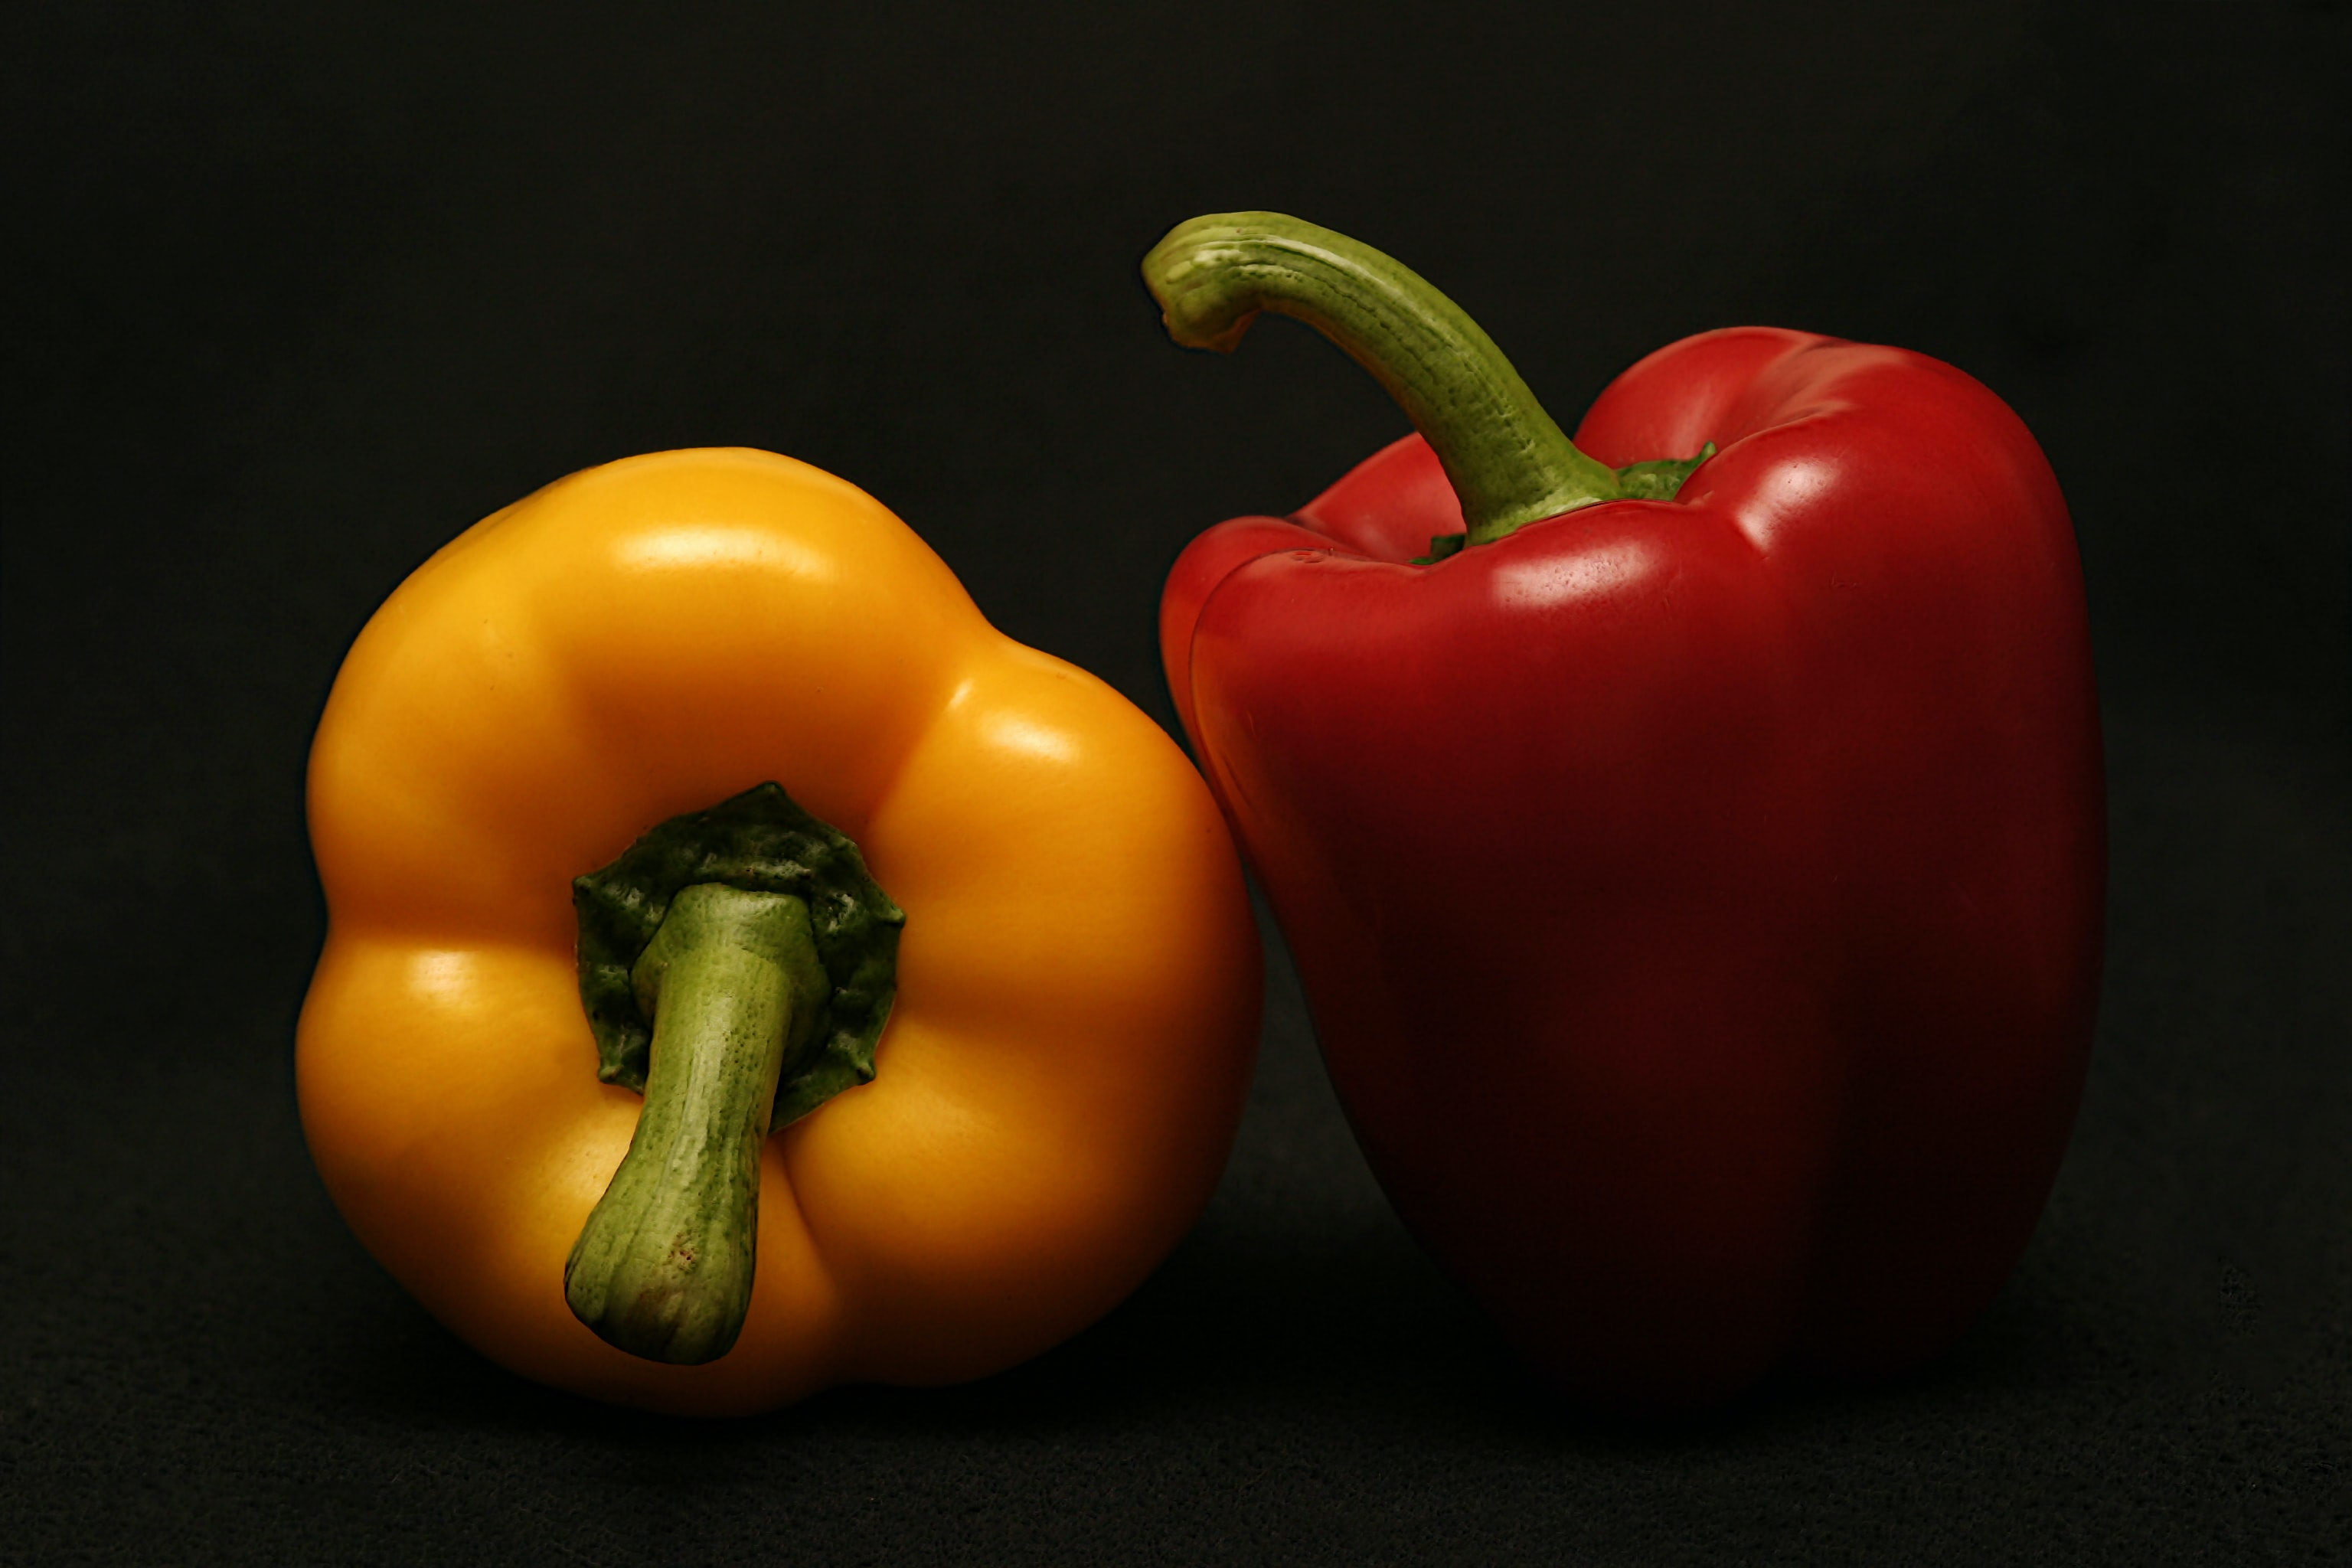 Red and yellow bell peppers in the shadows against a black background